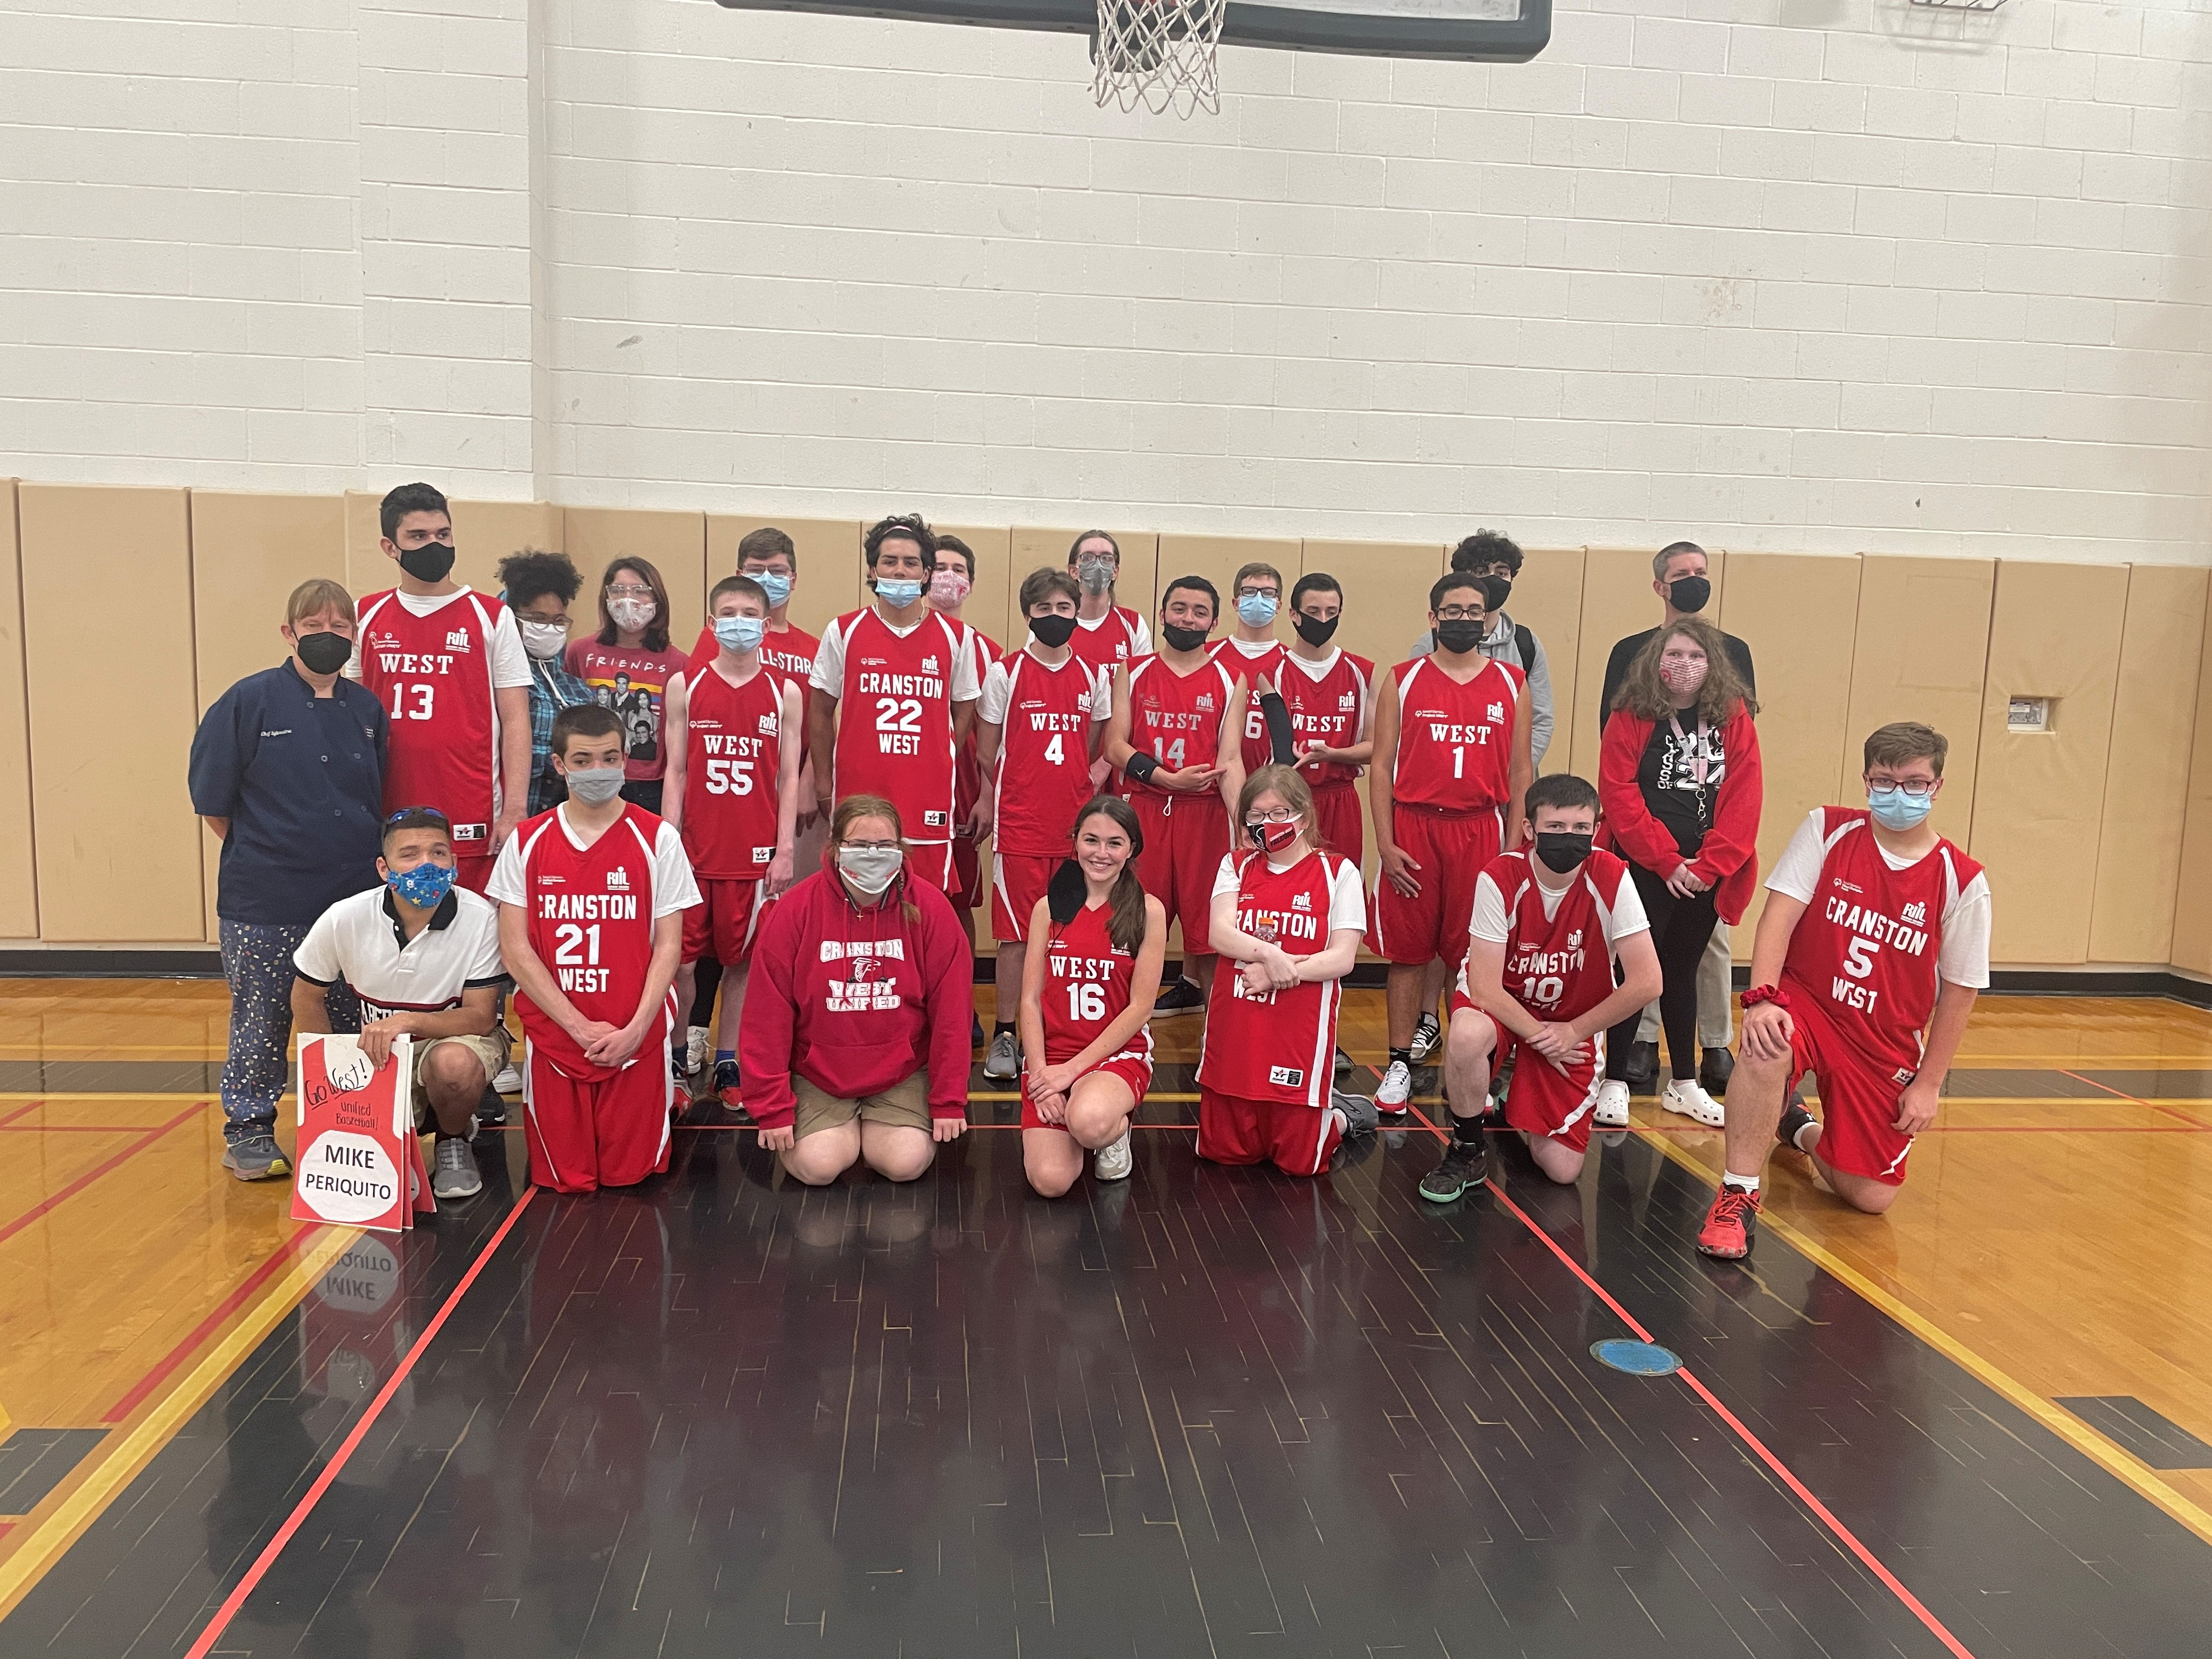 cranston west unified basketball team